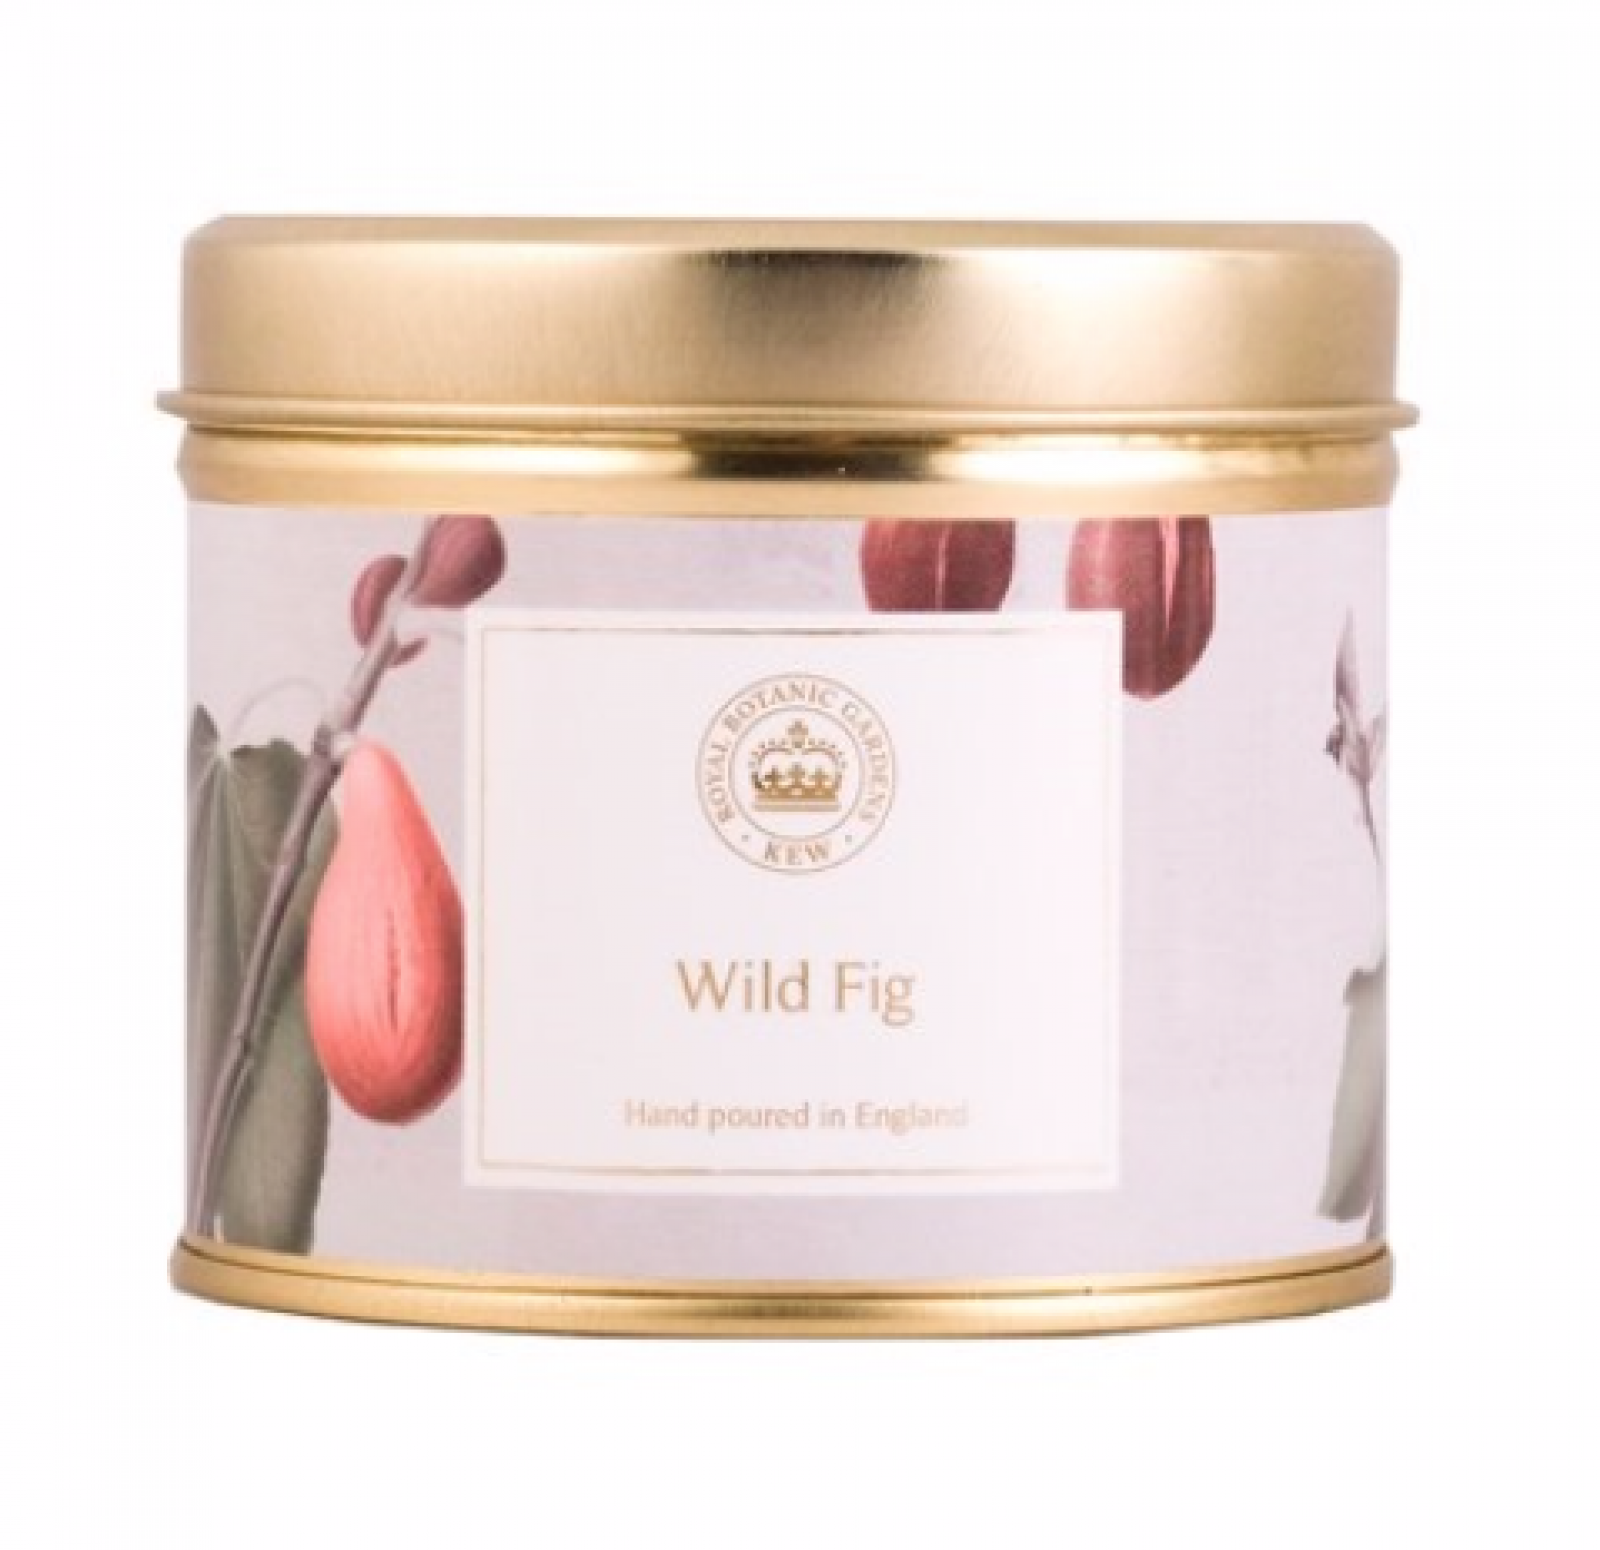 Wild Fig Kew Aromatics Candle In Tin 160g thumbnails